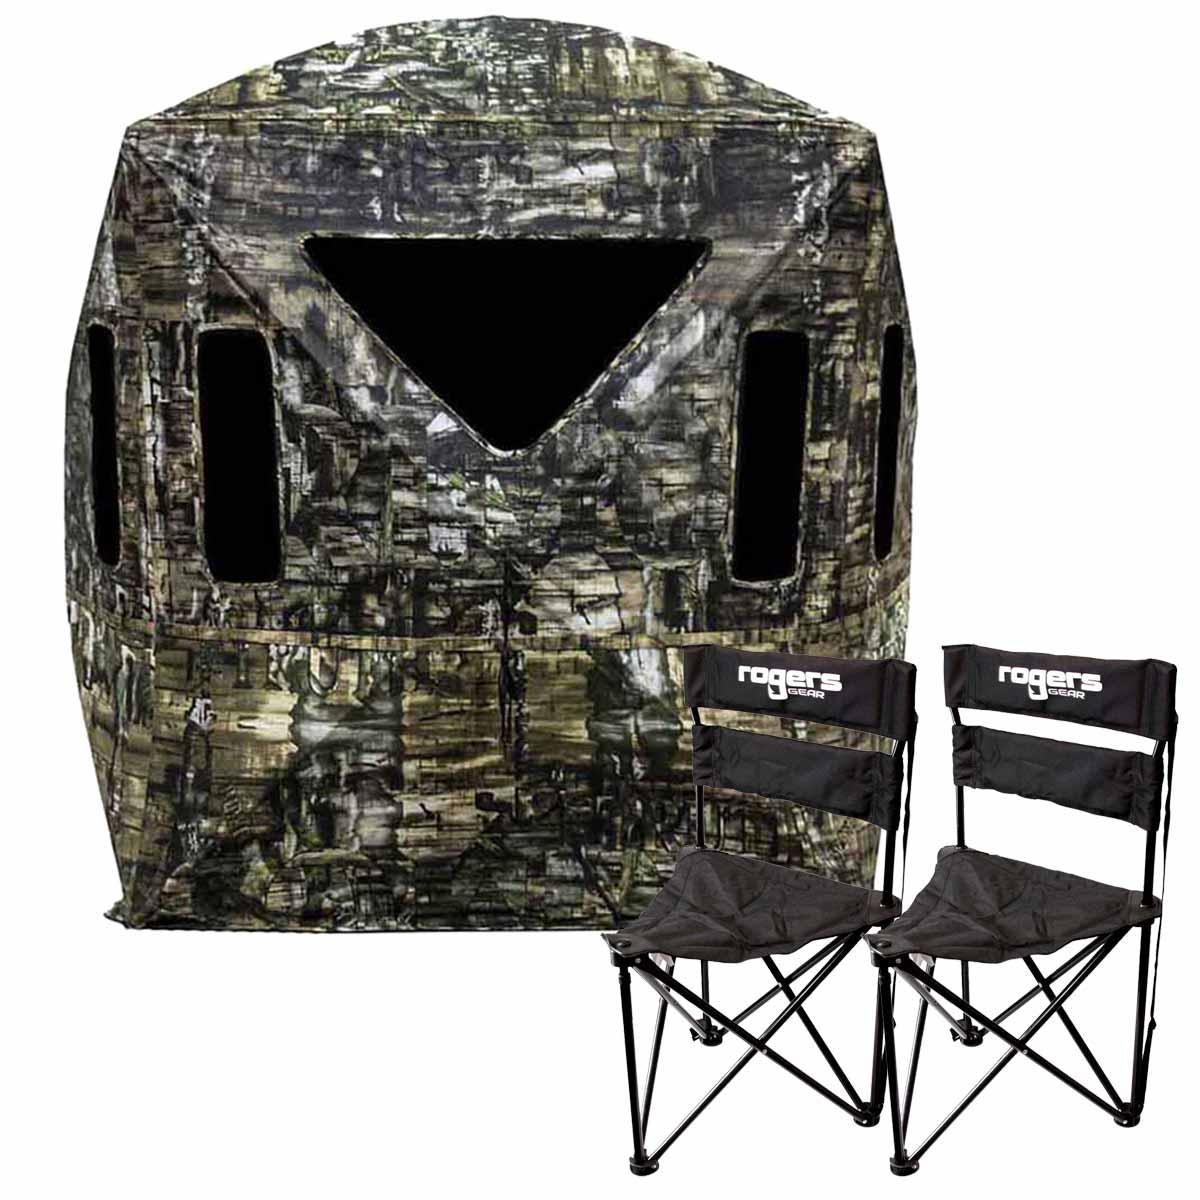 Primos Double Bull SurroundView 270° Blind with 2 Rogers Gear Workin Man Wide Tripod Chairs_1.jpg